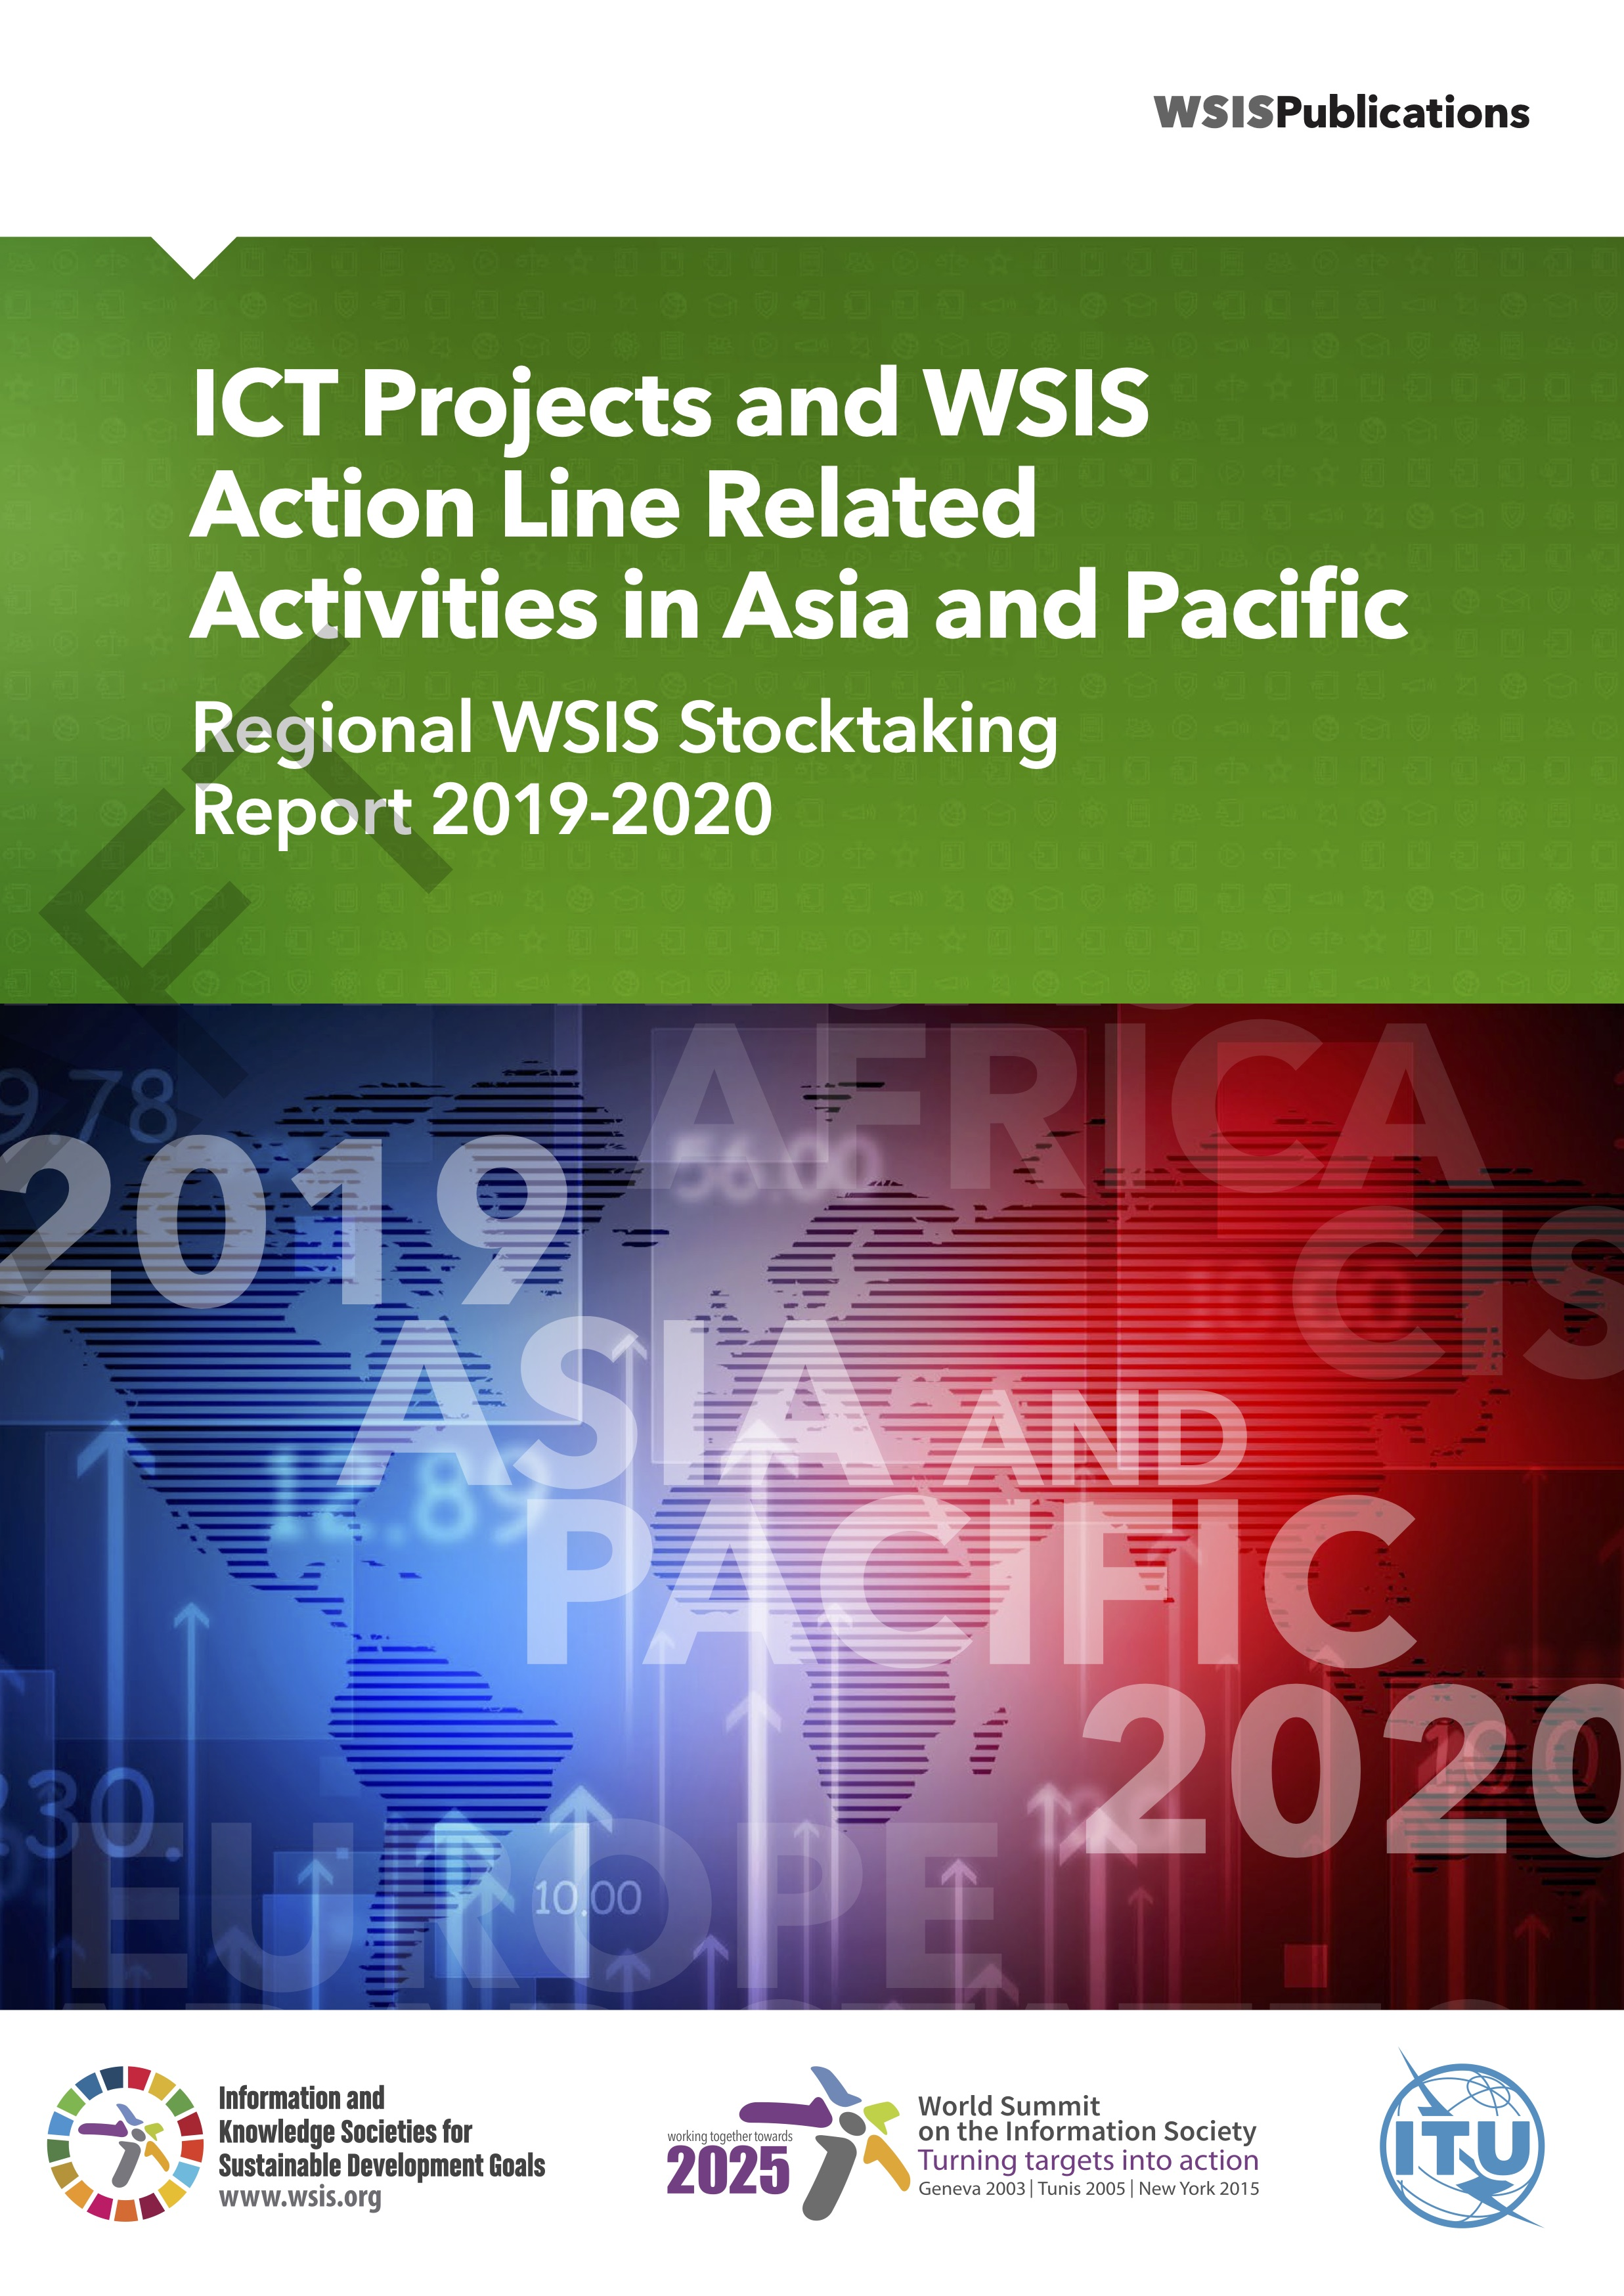 Regional WSIS Stocktaking Report 2019-2020 — Asia and Pacific